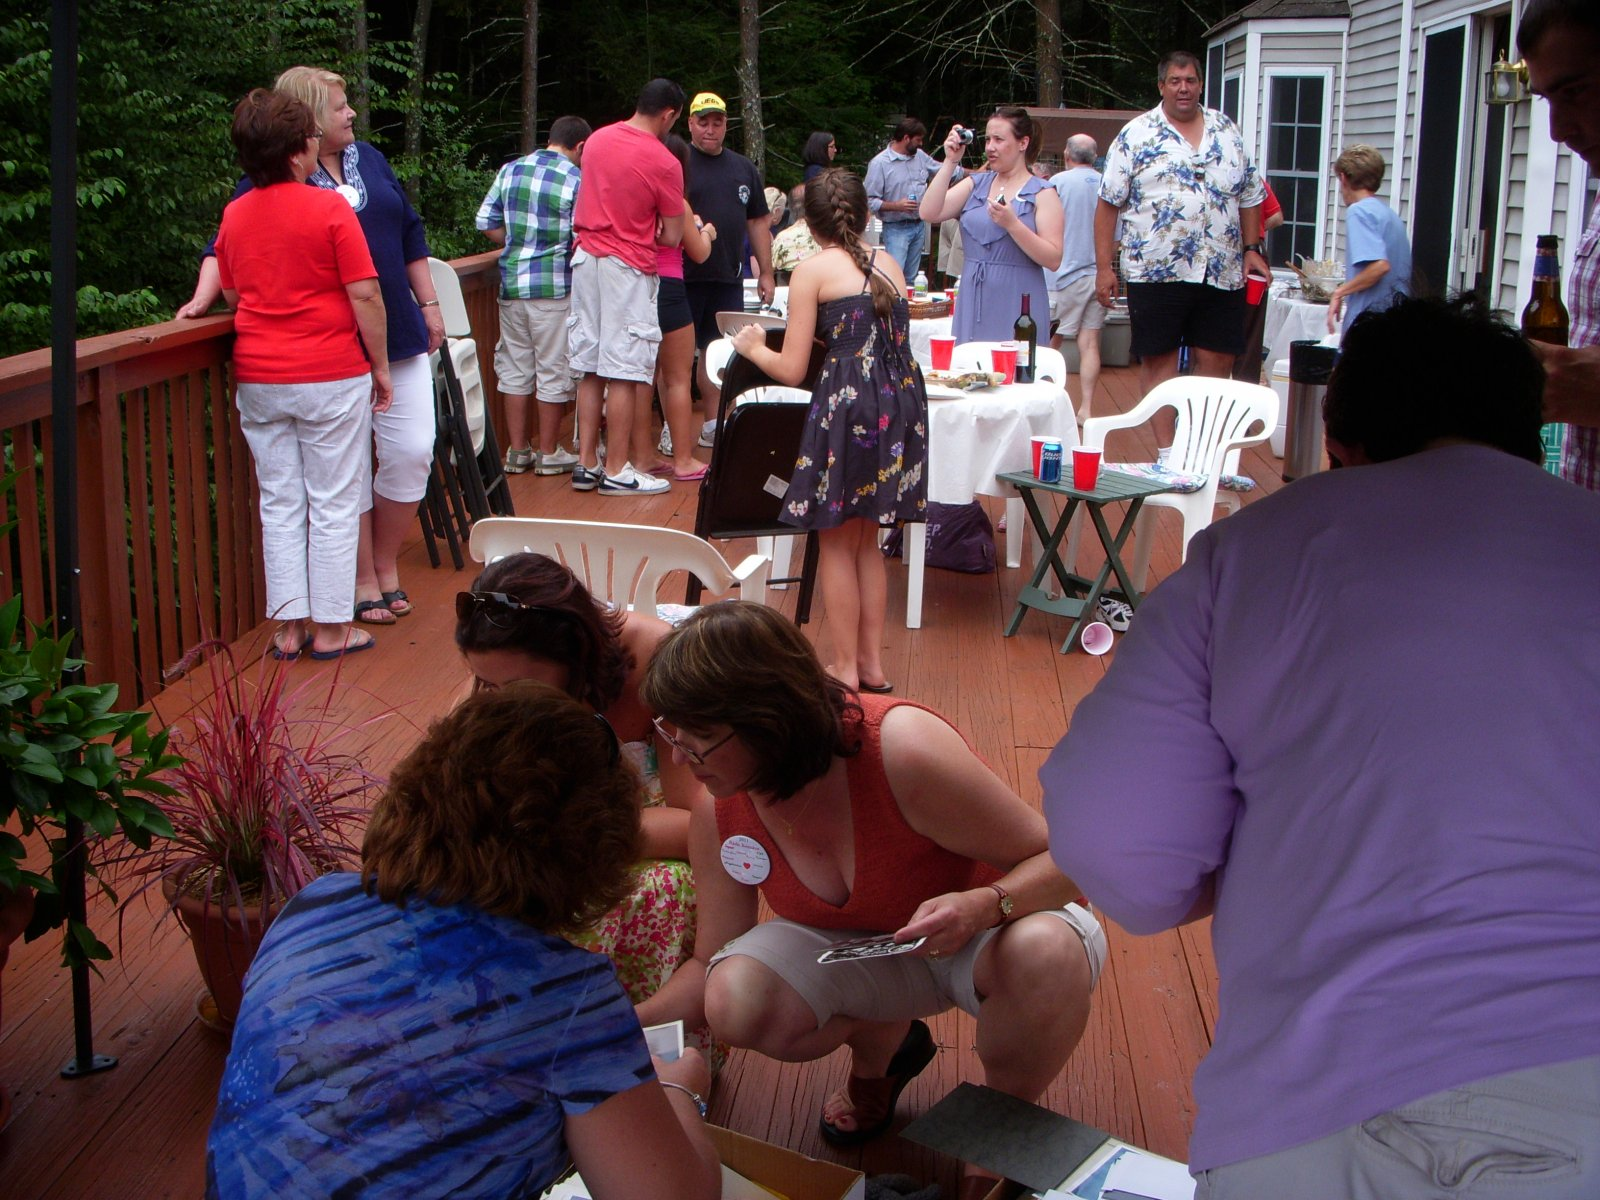 Click image for larger version  Name:Reunion Aug 2011 060.jpg Views:96 Size:356.9 KB ID:137588